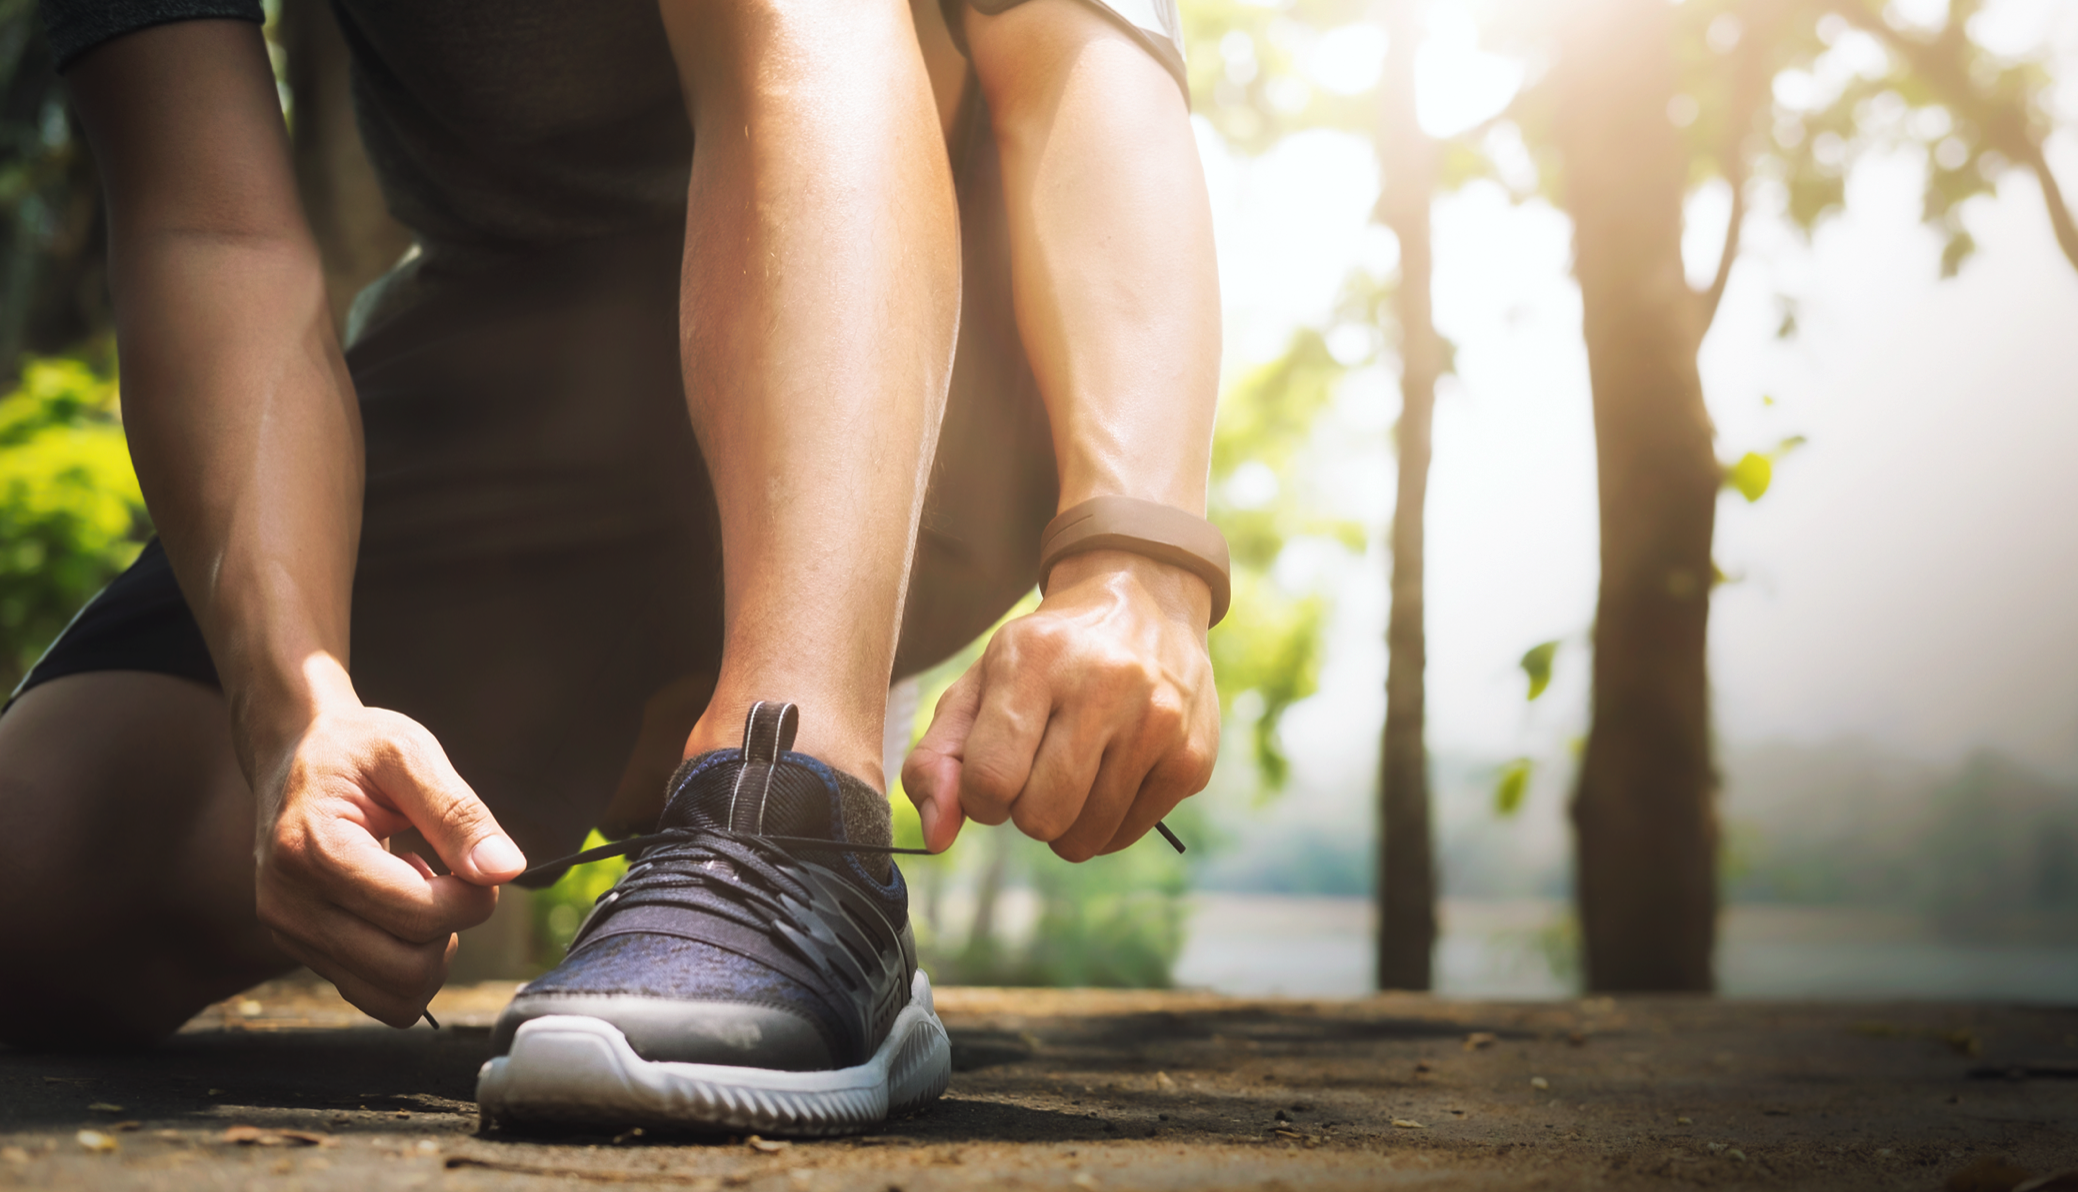 Best running shoes for flat feet in 2020